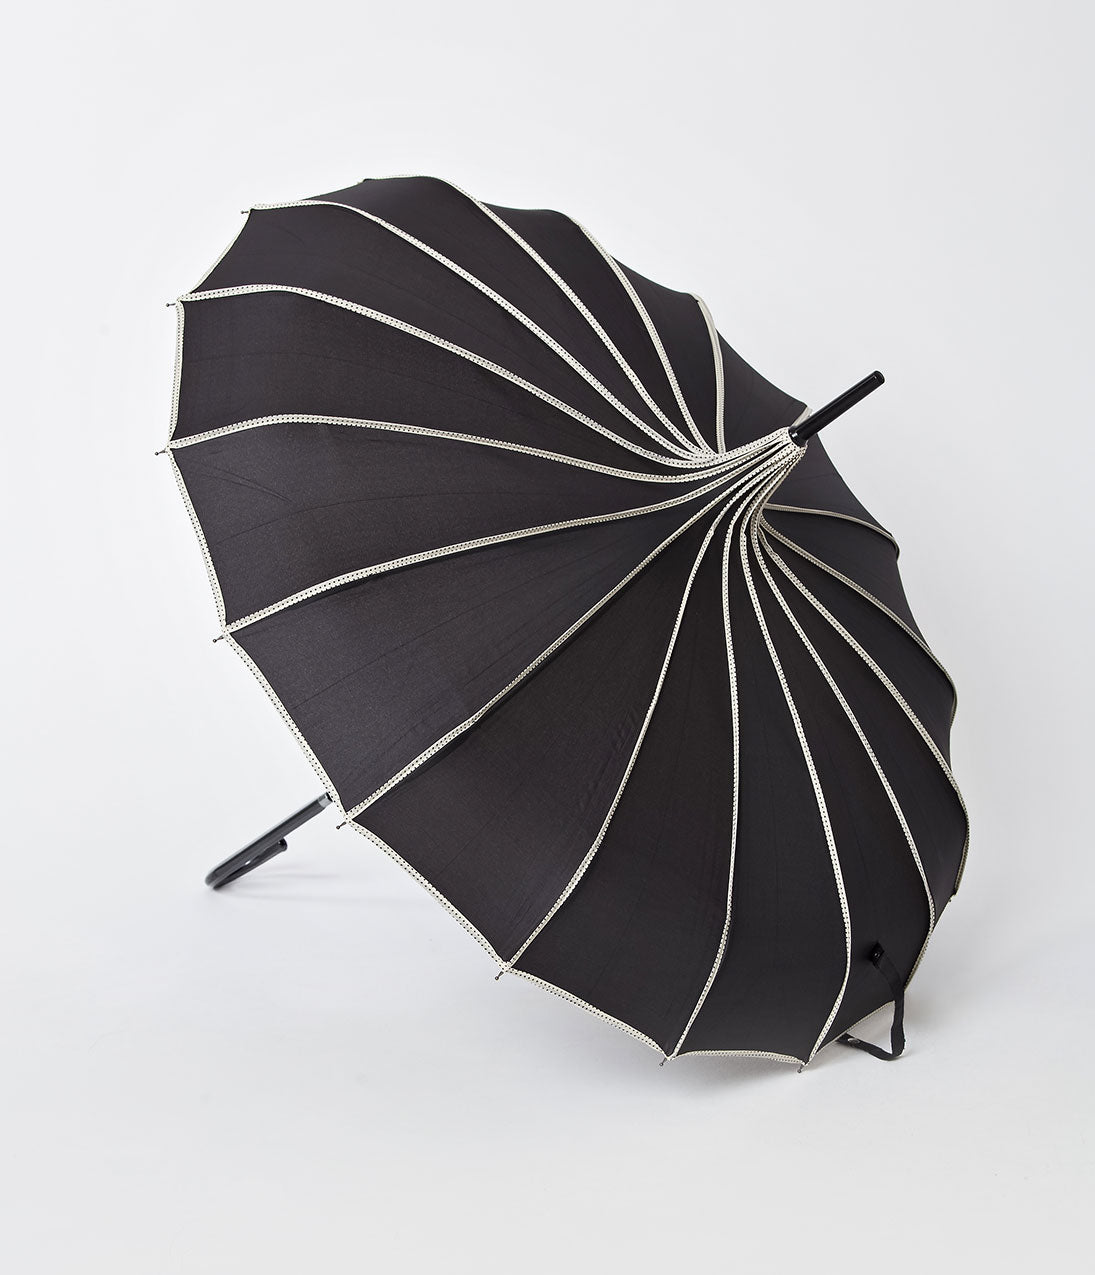 1940s Clothing Vintage Style Black  Polka Dot Tan Princess Pagoda Umbrella $36.00 AT vintagedancer.com